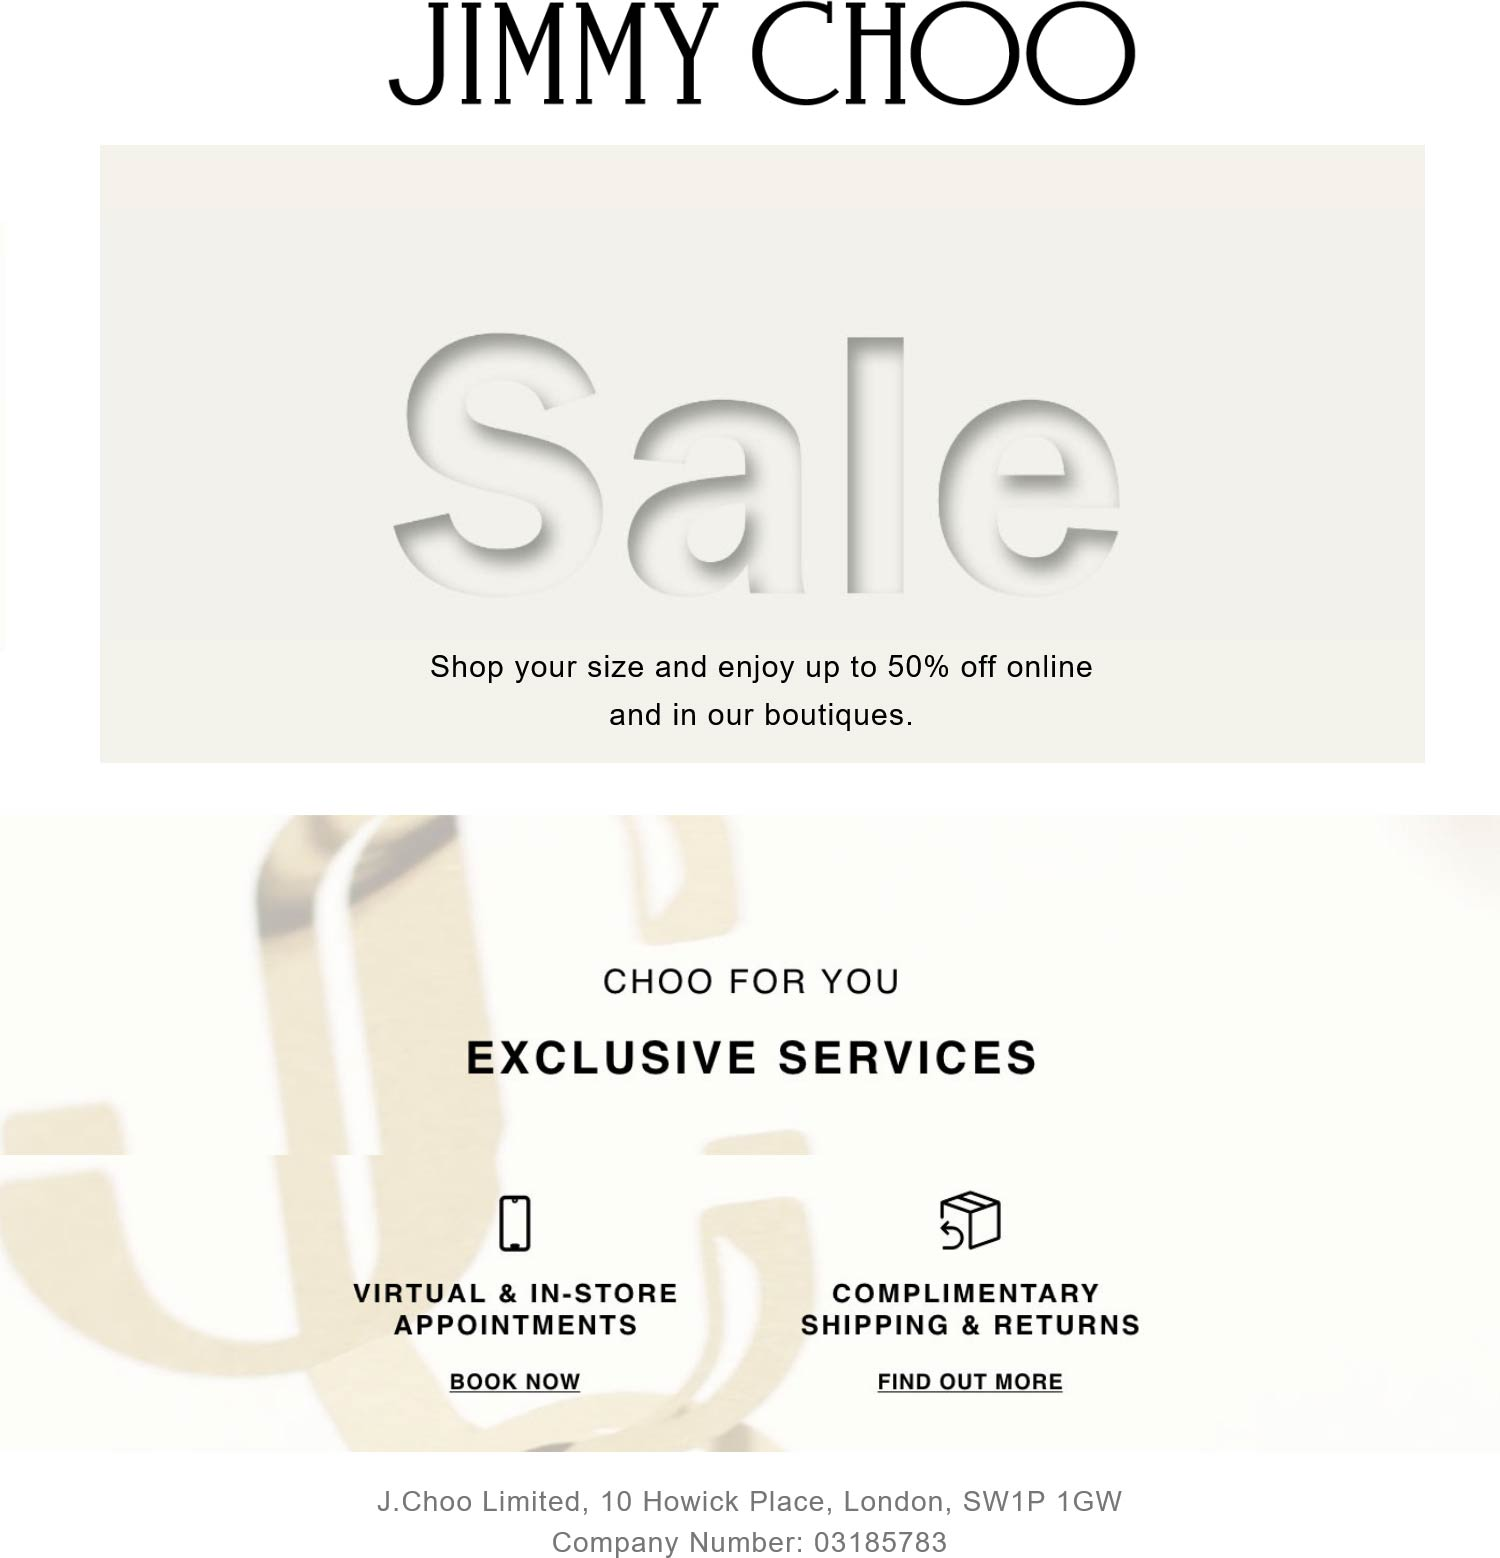 Jimmy Choo stores Coupon  50% off shoe sale going on at Jimmy Choo, ditto online #jimmychoo